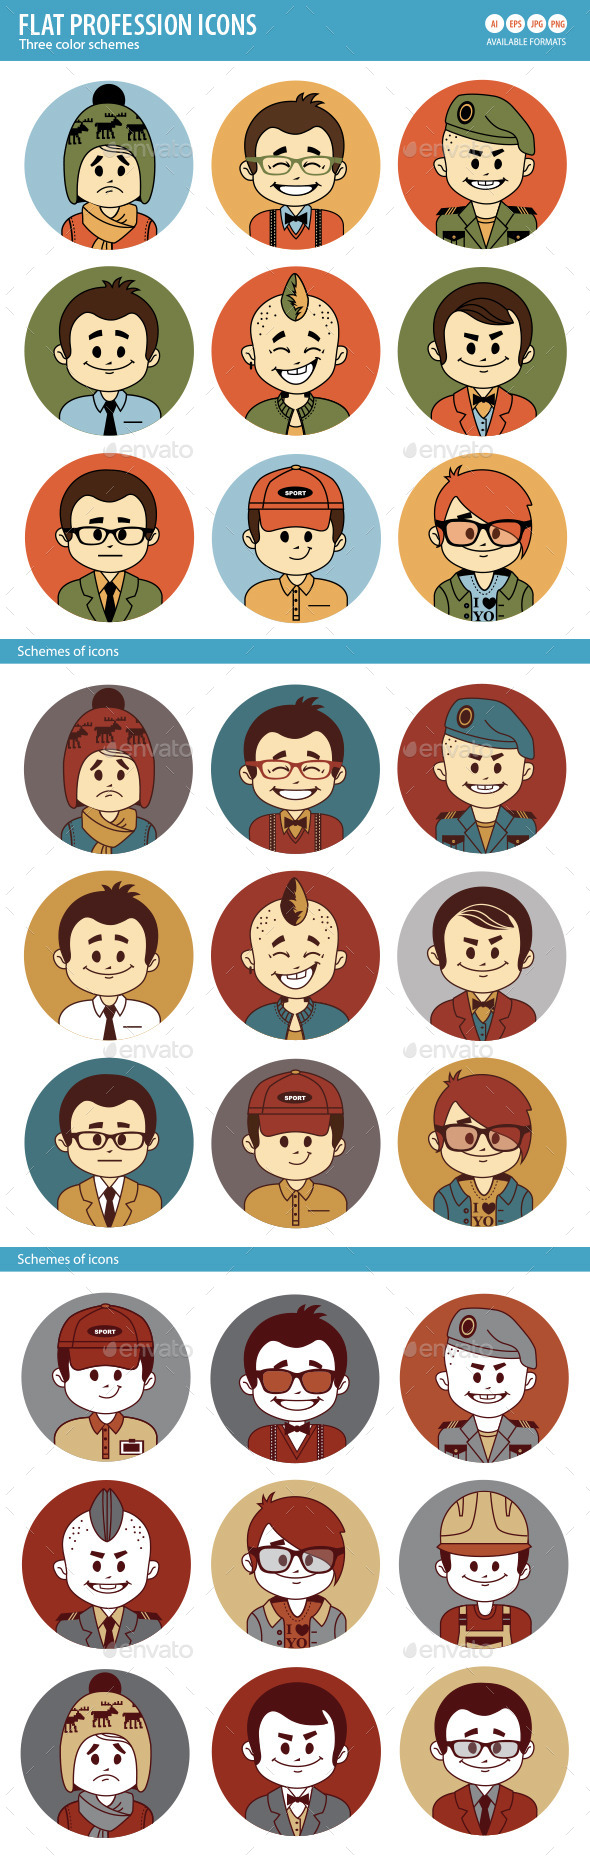 Set of Flat People Profession Icons